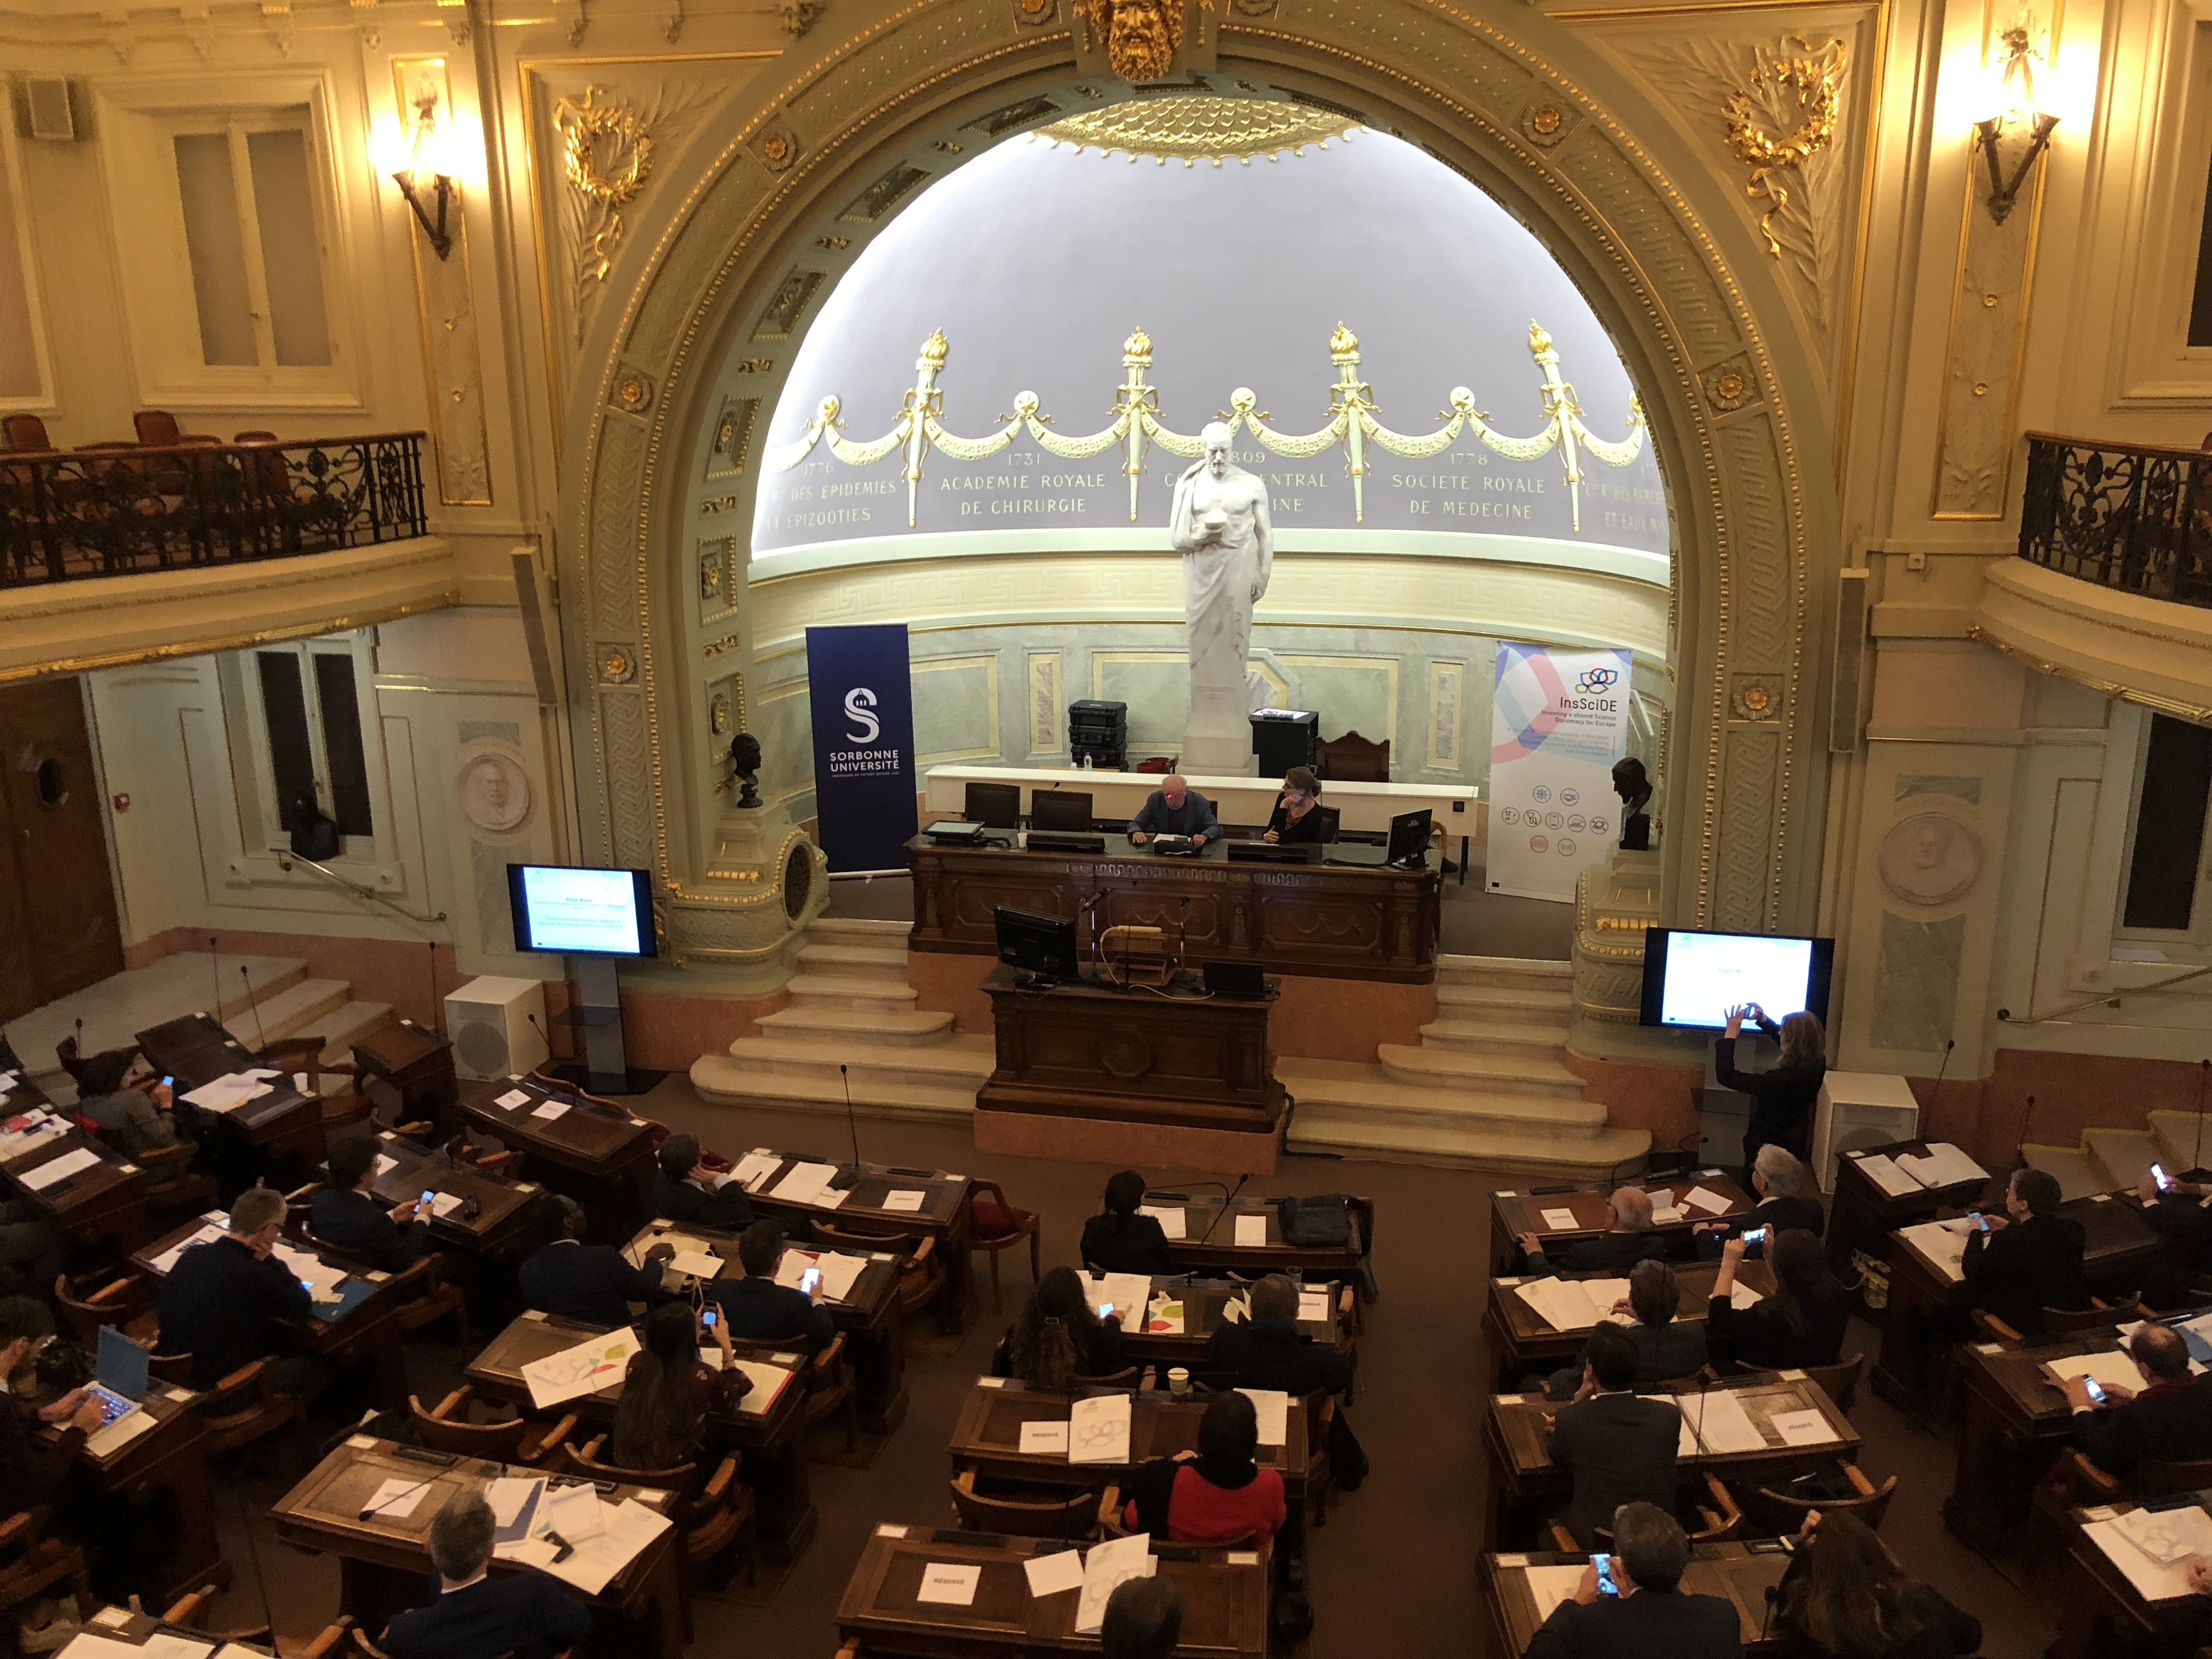 CNRS launches the project InsSciDE – Inventing a shared Science Diplomacy for Europe